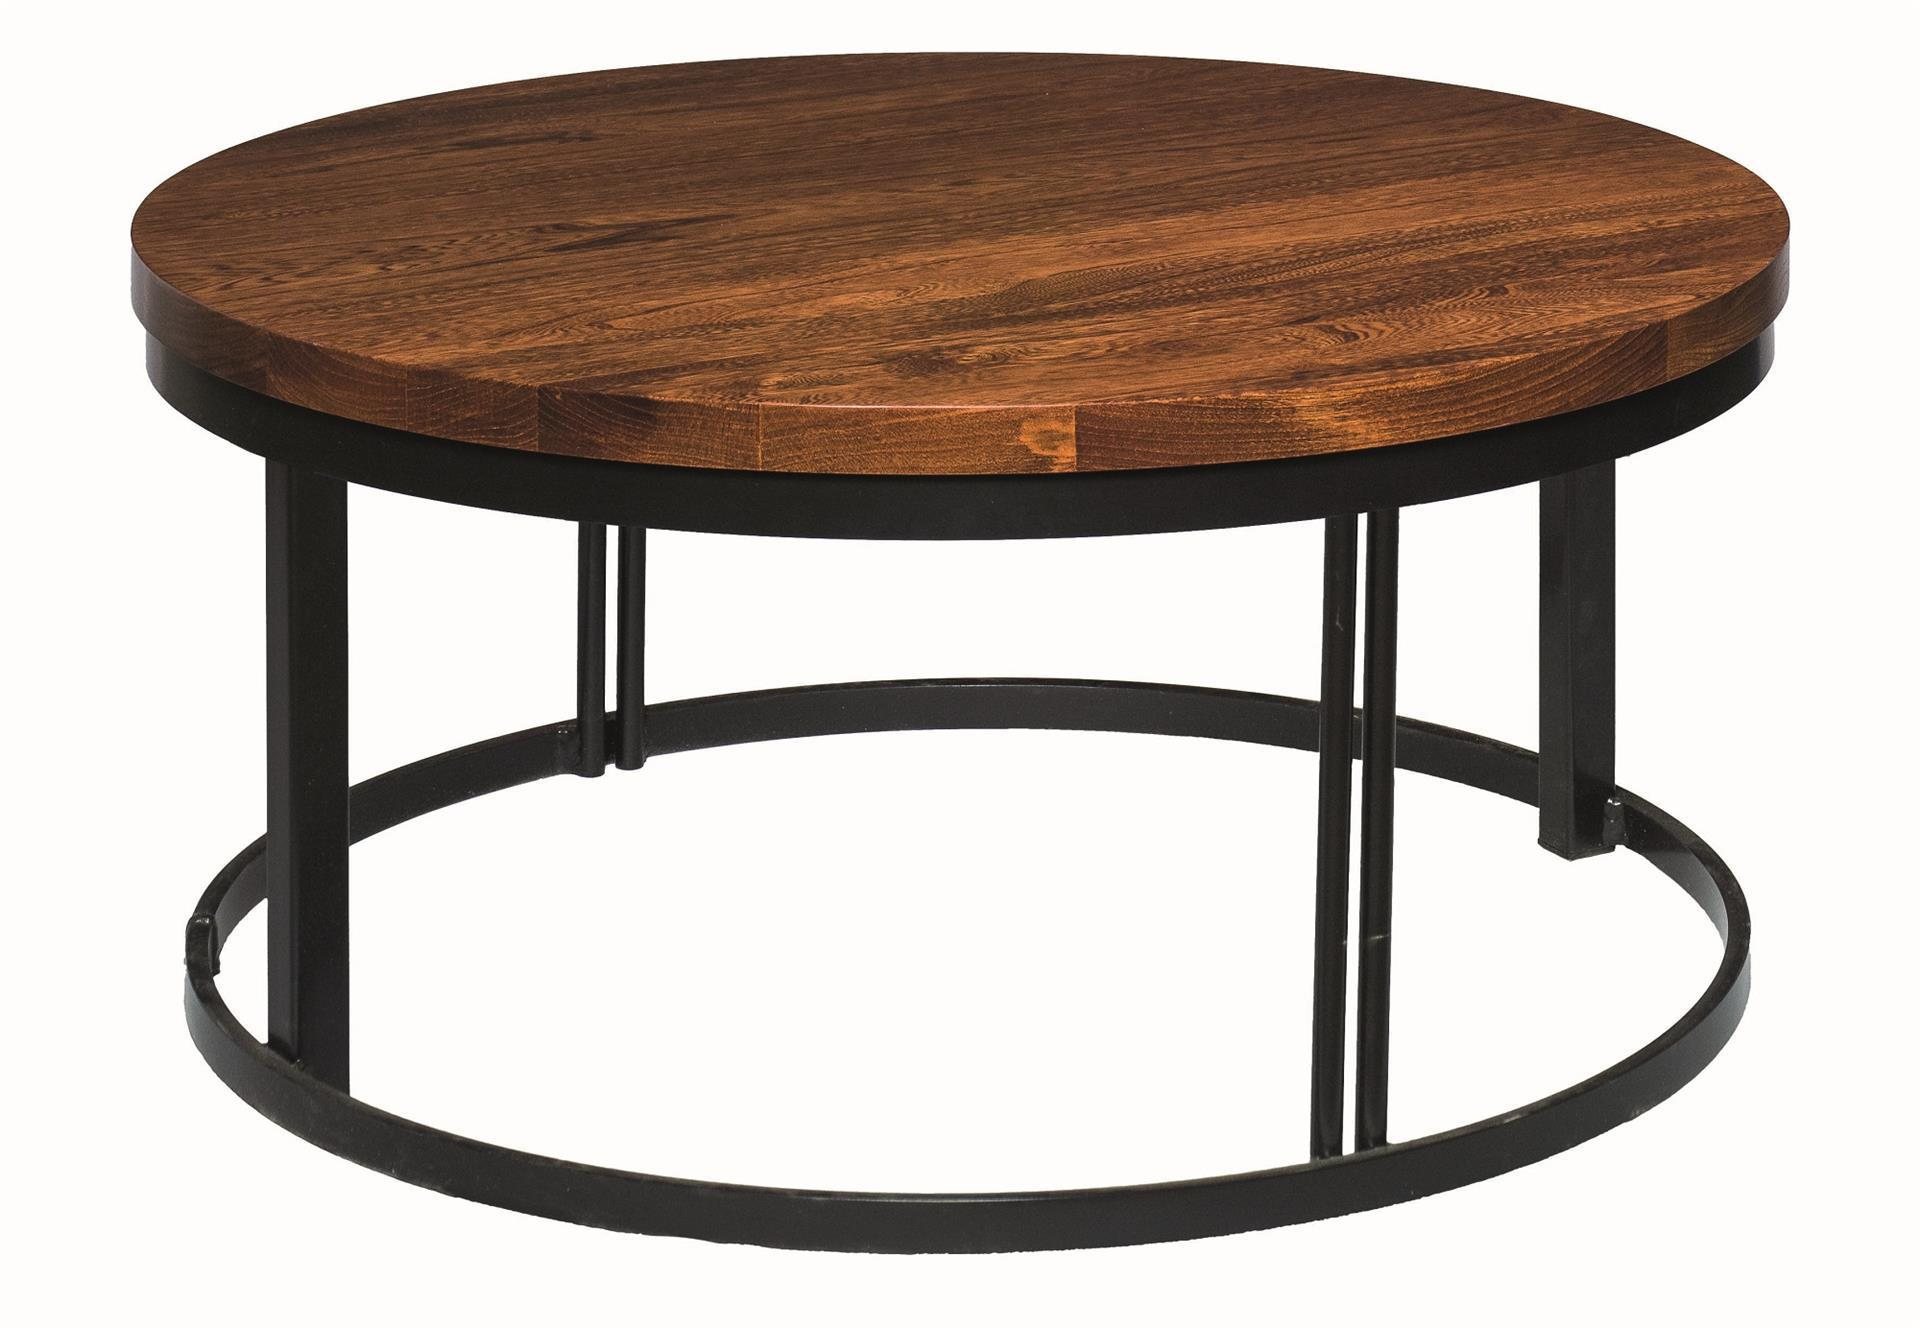 Malibu Round Coffee Table From Dutchcrafters Amish Furniture